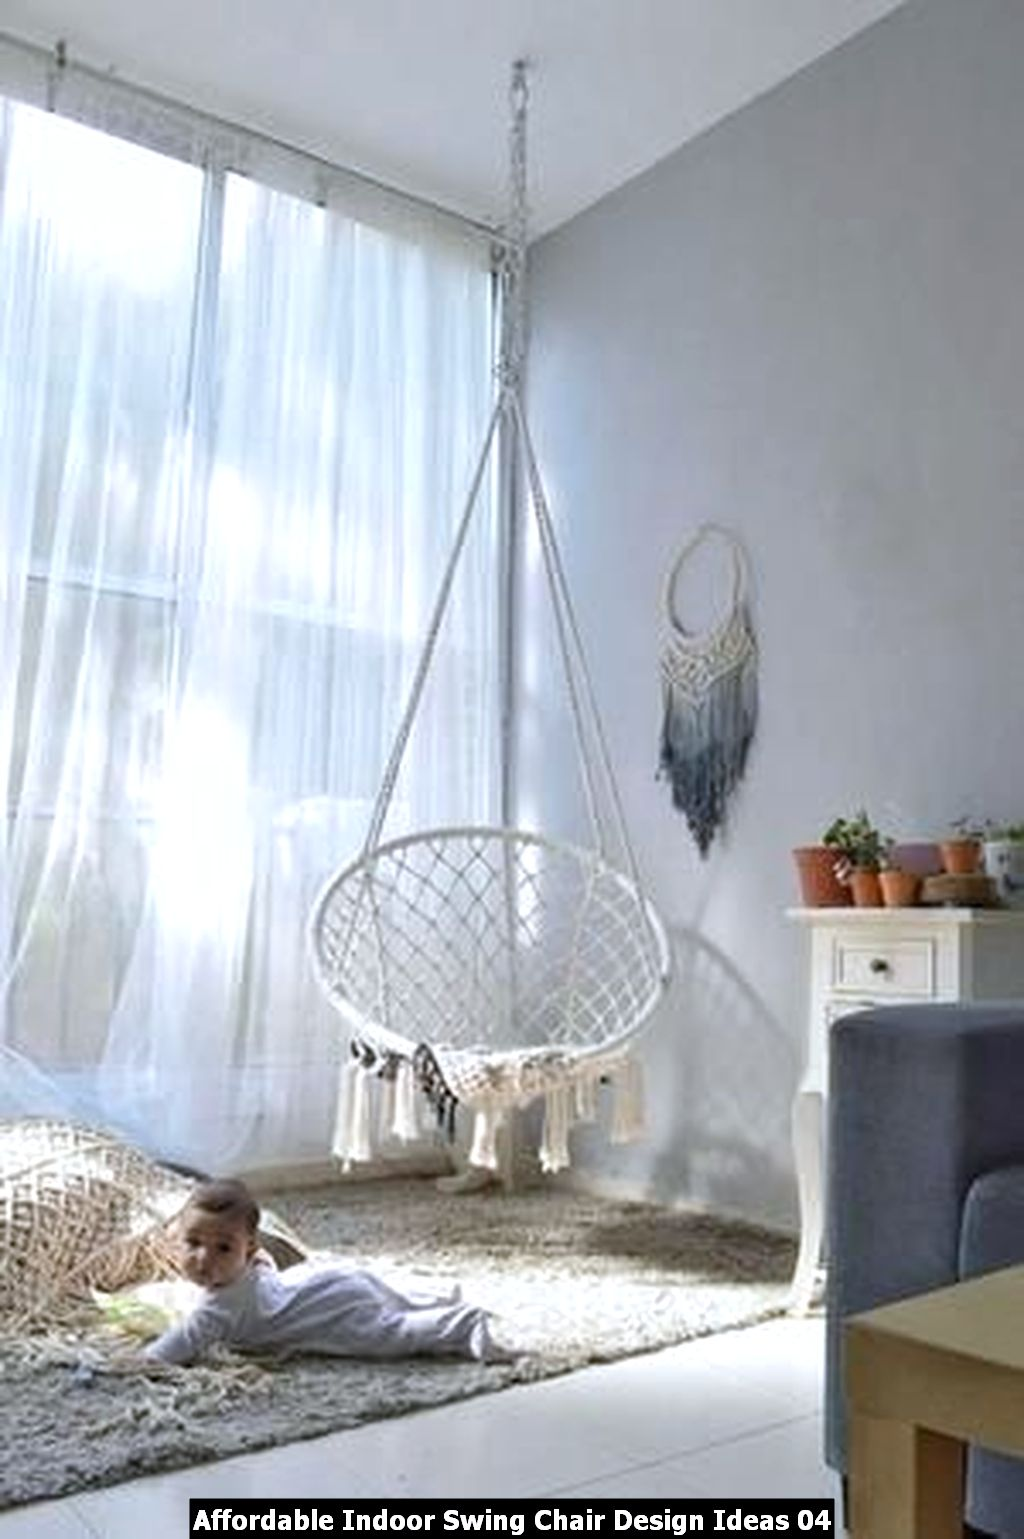 Affordable Indoor Swing Chair Design Ideas 04